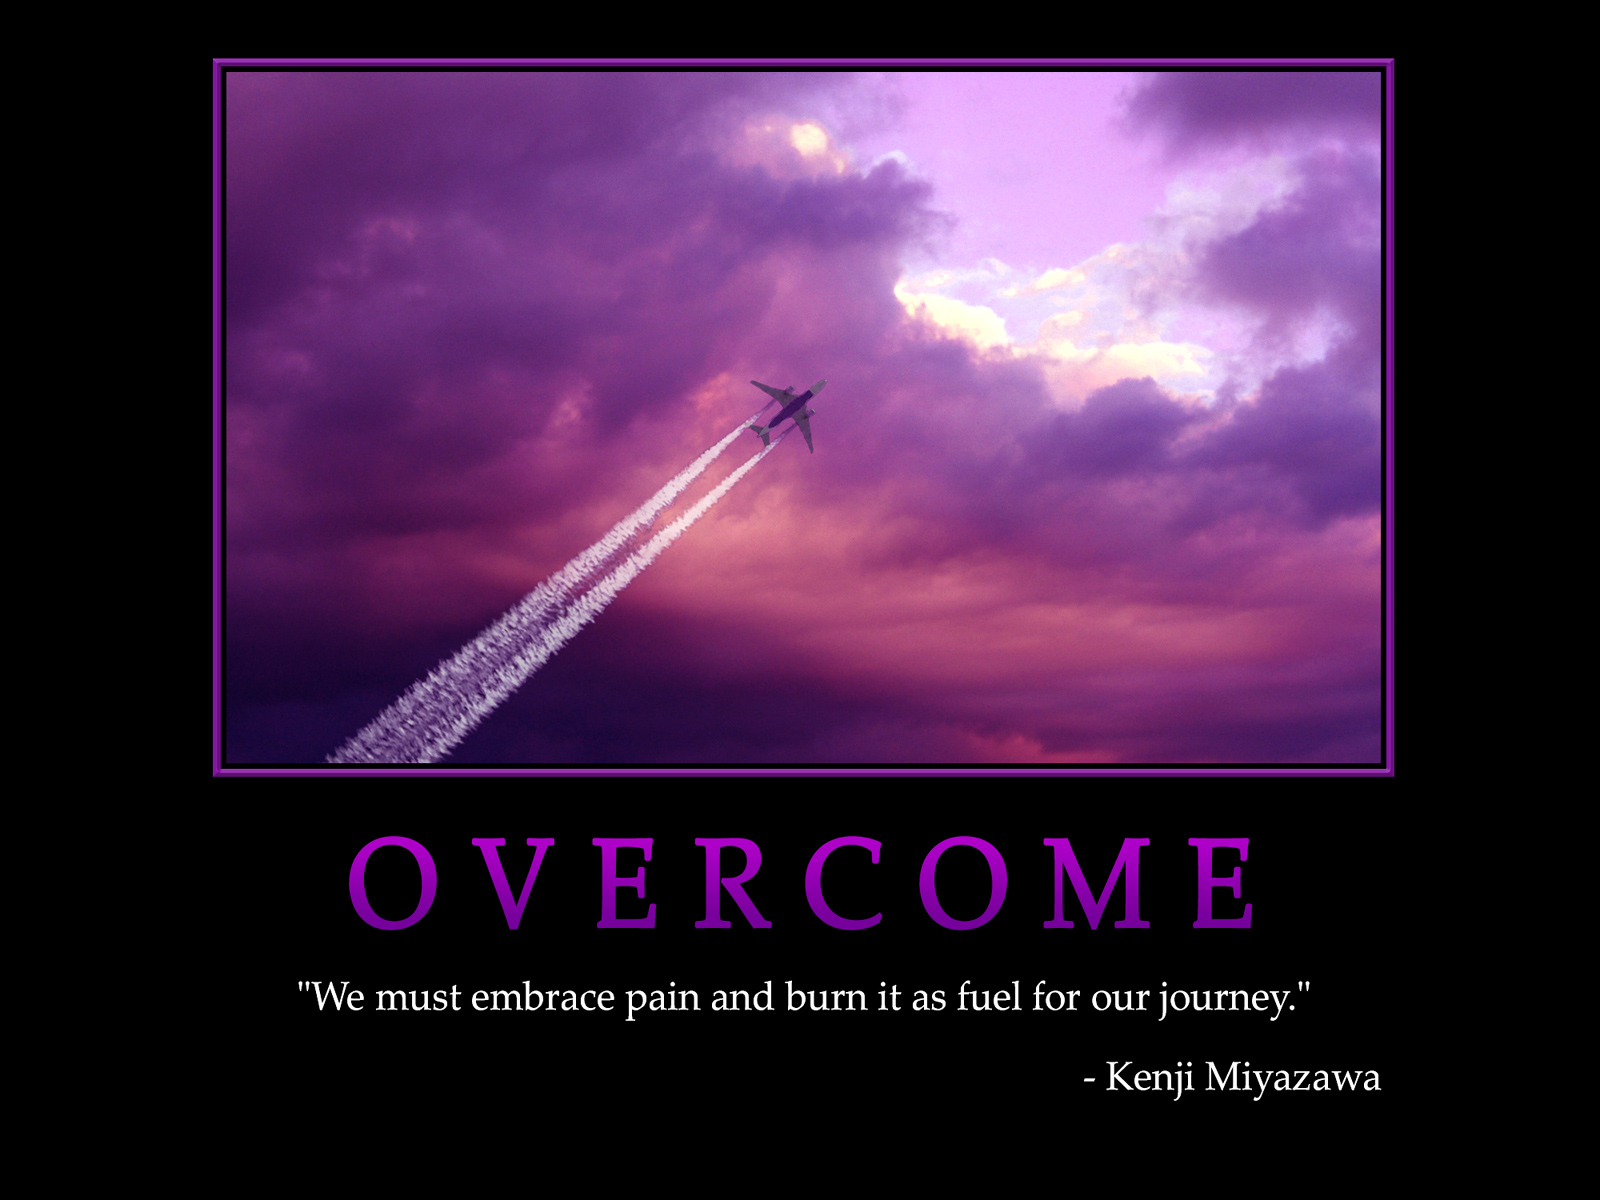 Overcoming Obstacles Quotes Inspirational. QuotesGram